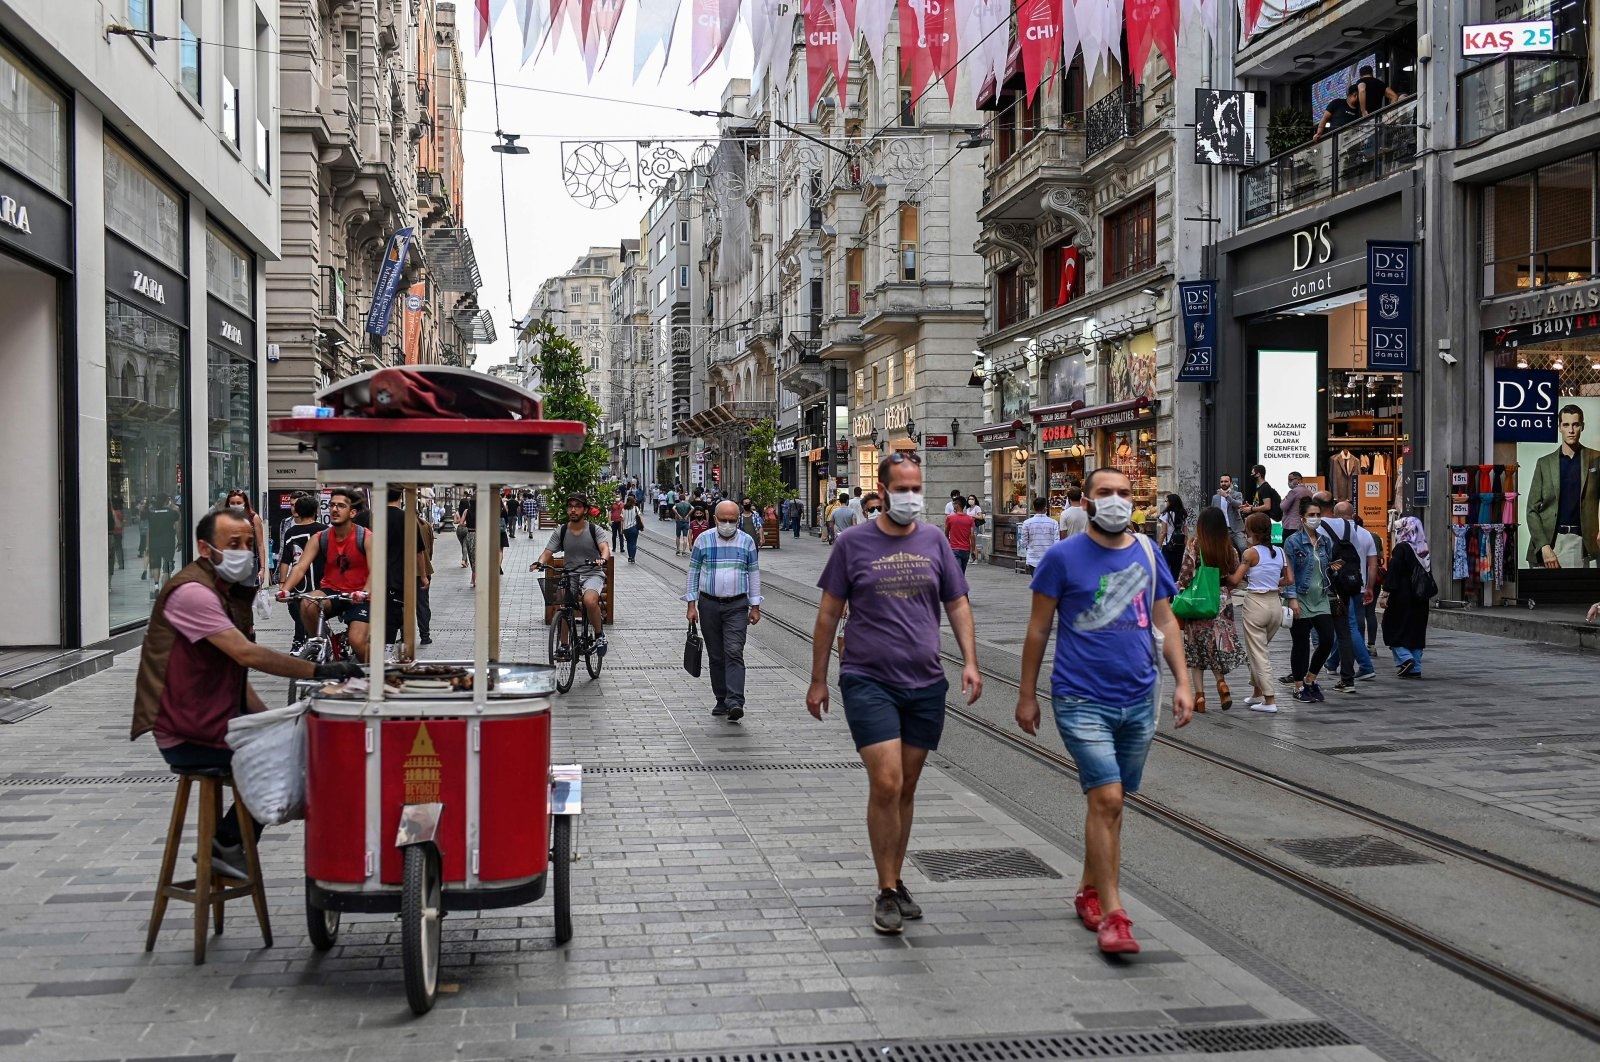 People wearing protective face masks to curb the coronavirus spread walk in popular shopping avenue Istiklal, Istanbul, June 25, 2020. (AFP Photo)